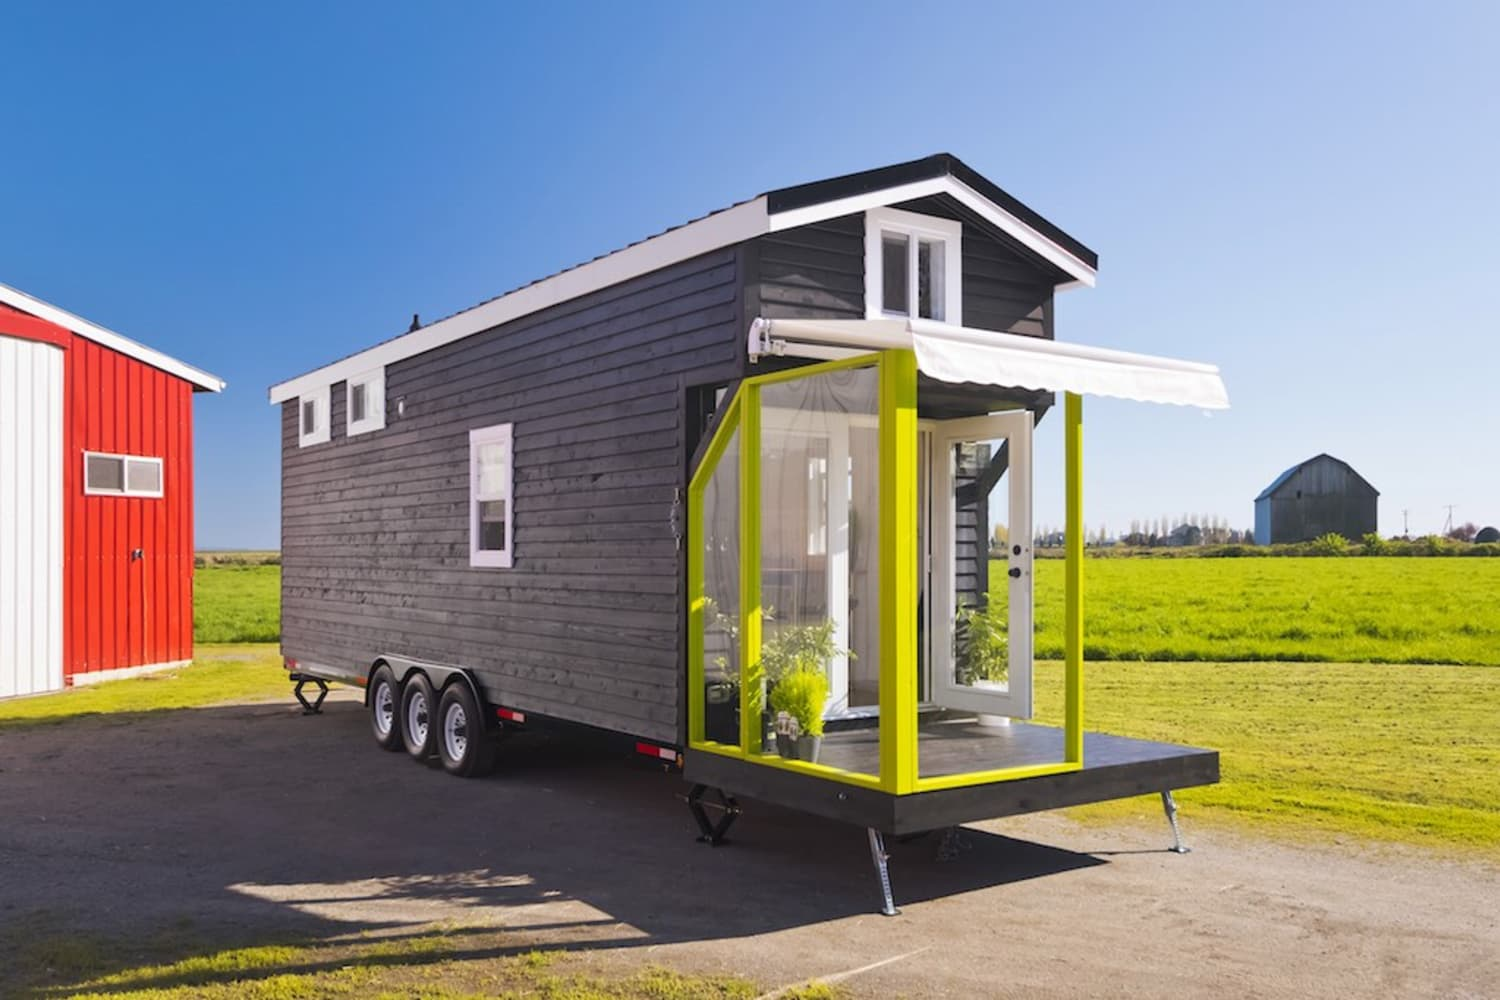 Curious How a 310-Square-Foot Tiny House Can Sleep 8 People?